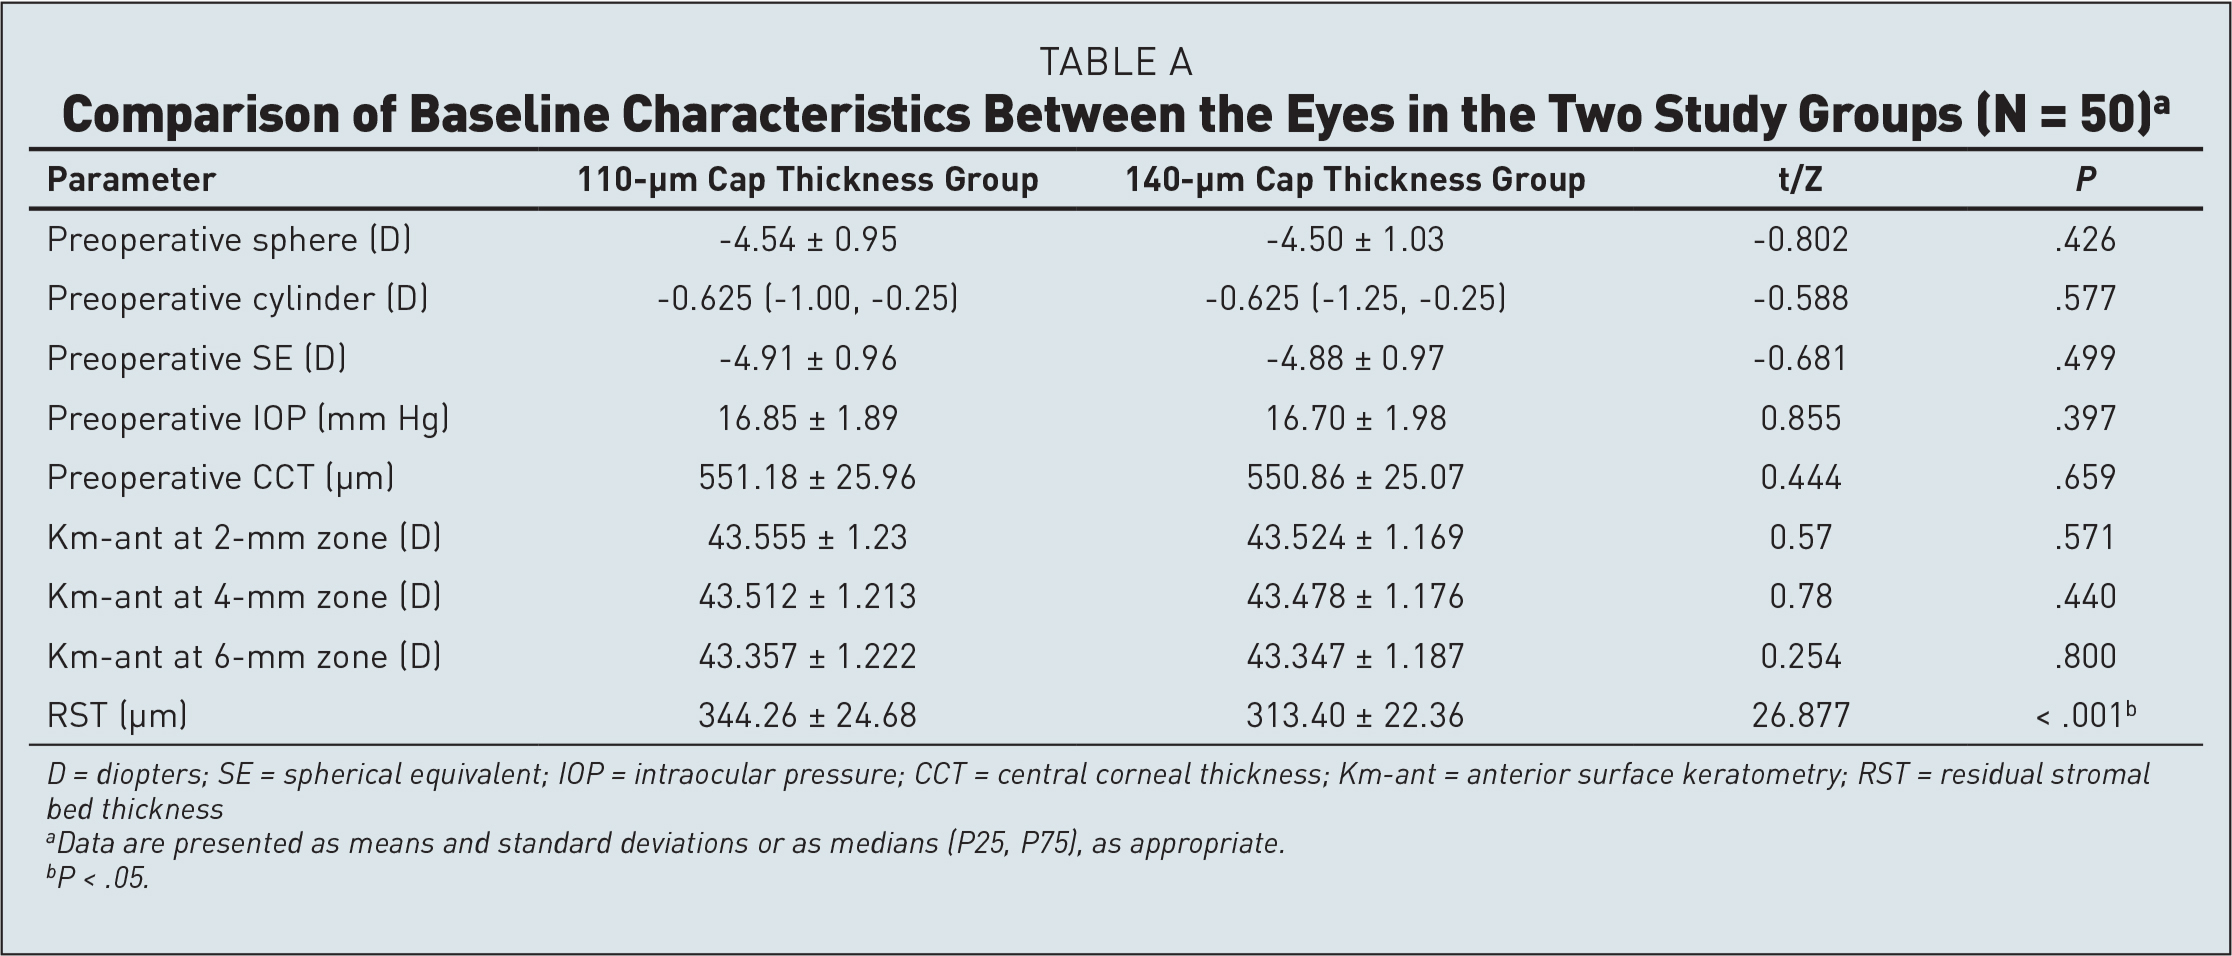 Comparison of Baseline Characteristics Between the Eyes in the Two Study Groups (N = 50)a